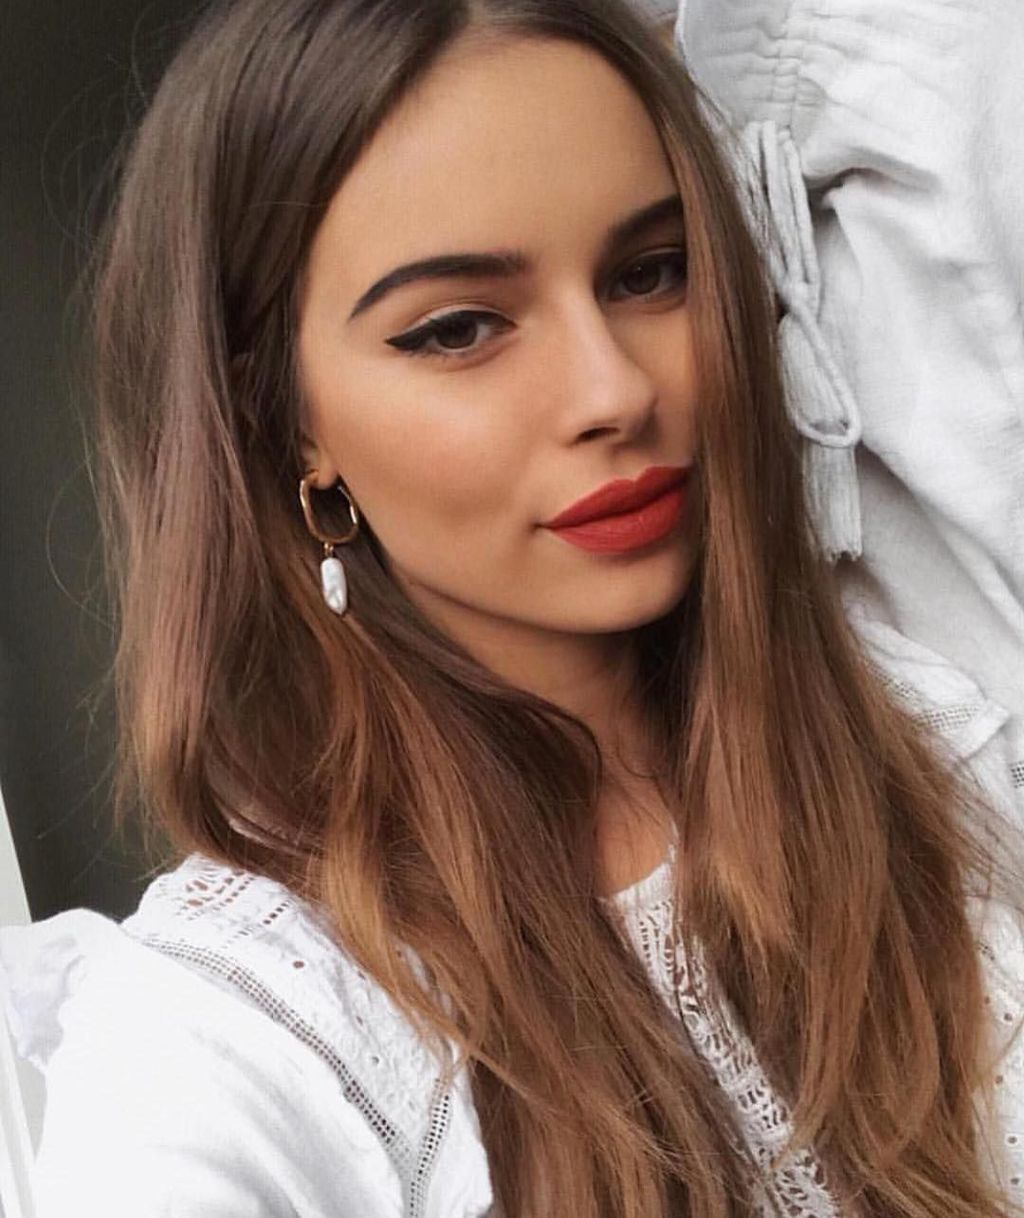 36 Awesome Spring And Summer Hairstyles 2019 For Women